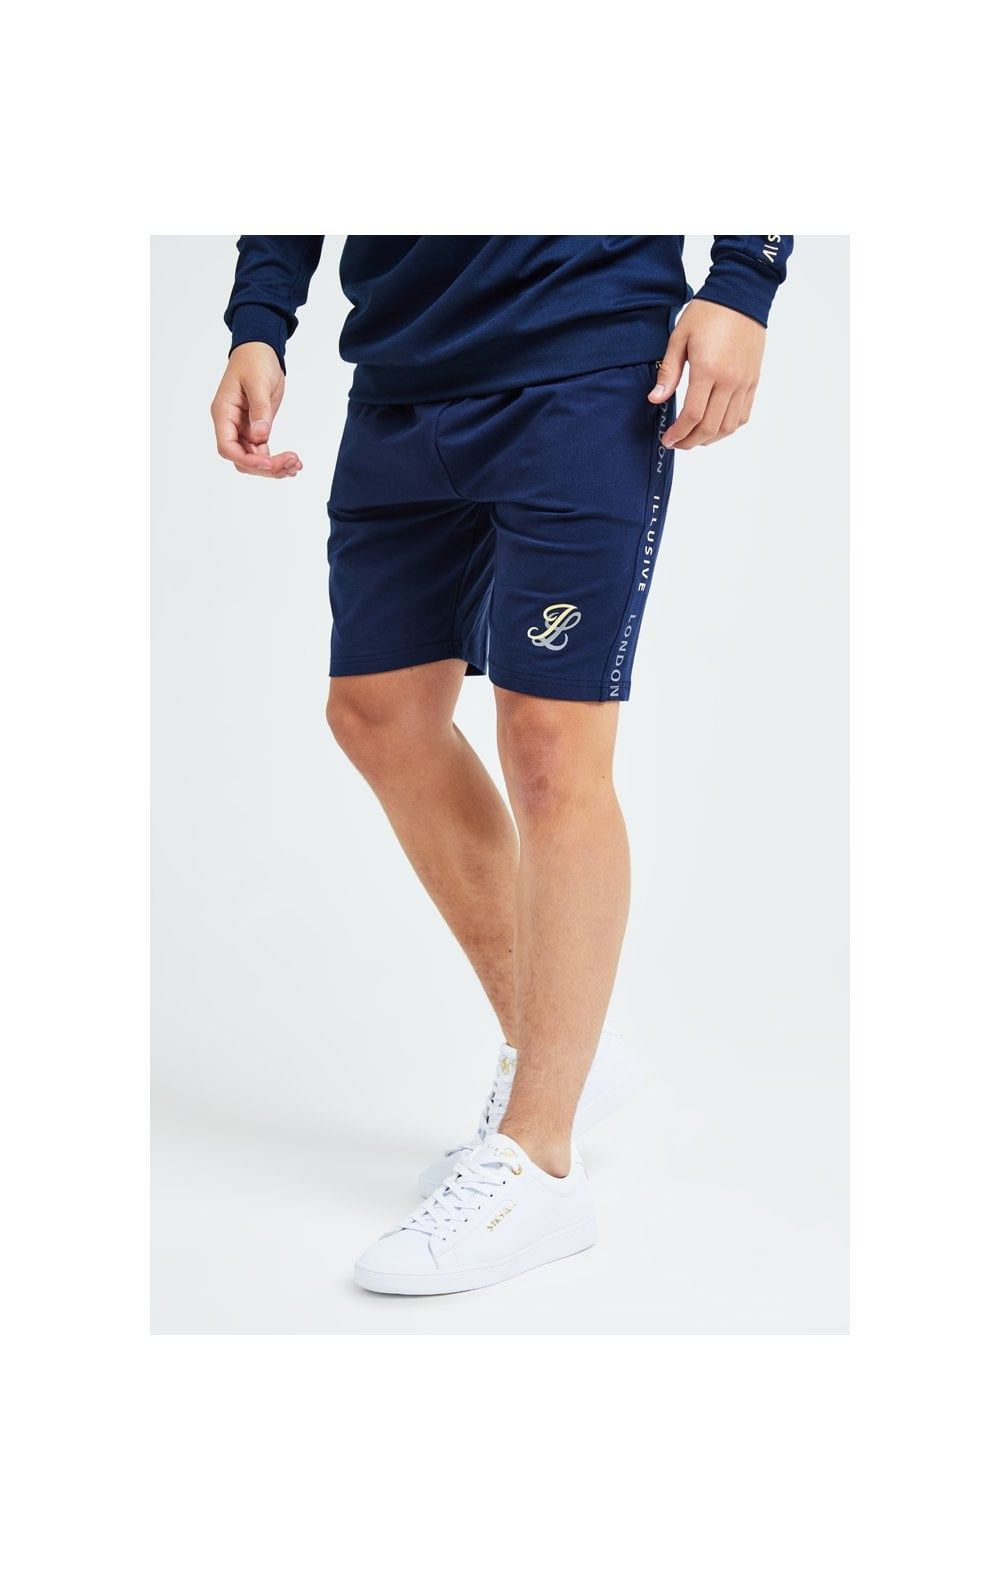 Load image into Gallery viewer, Illusive London Legacy Jersey Shorts -Navy & Cream